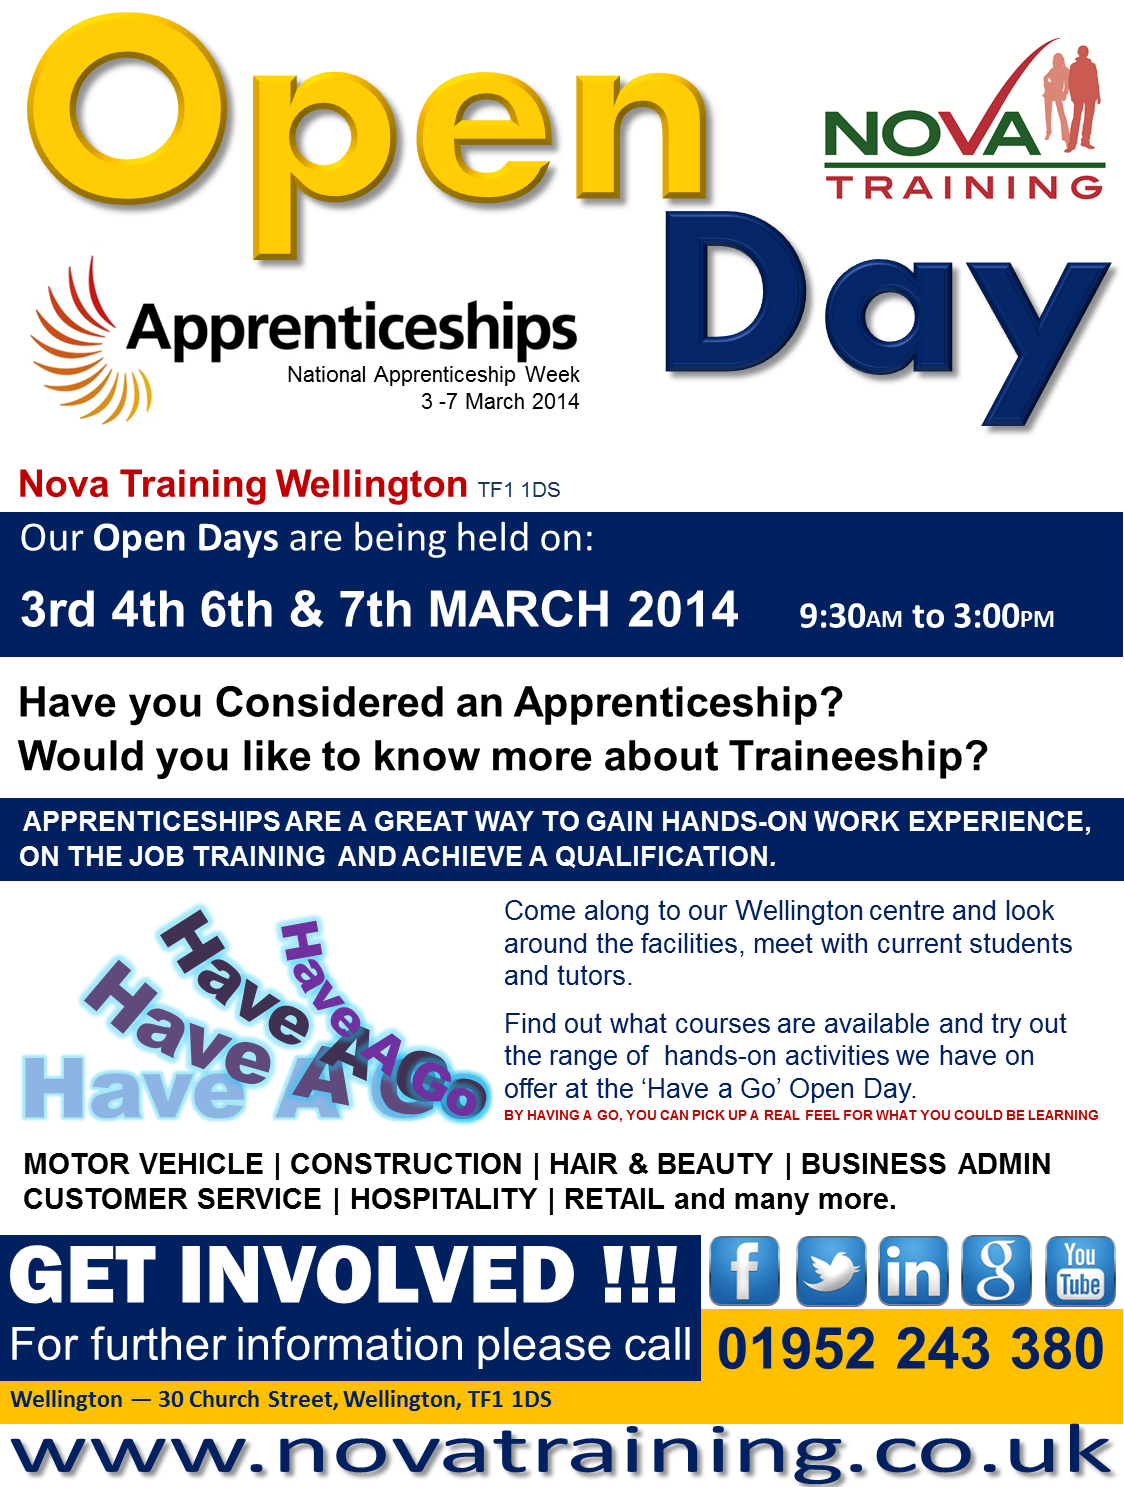 WELLINGTON APPRENTICESHIP WEEK 2014